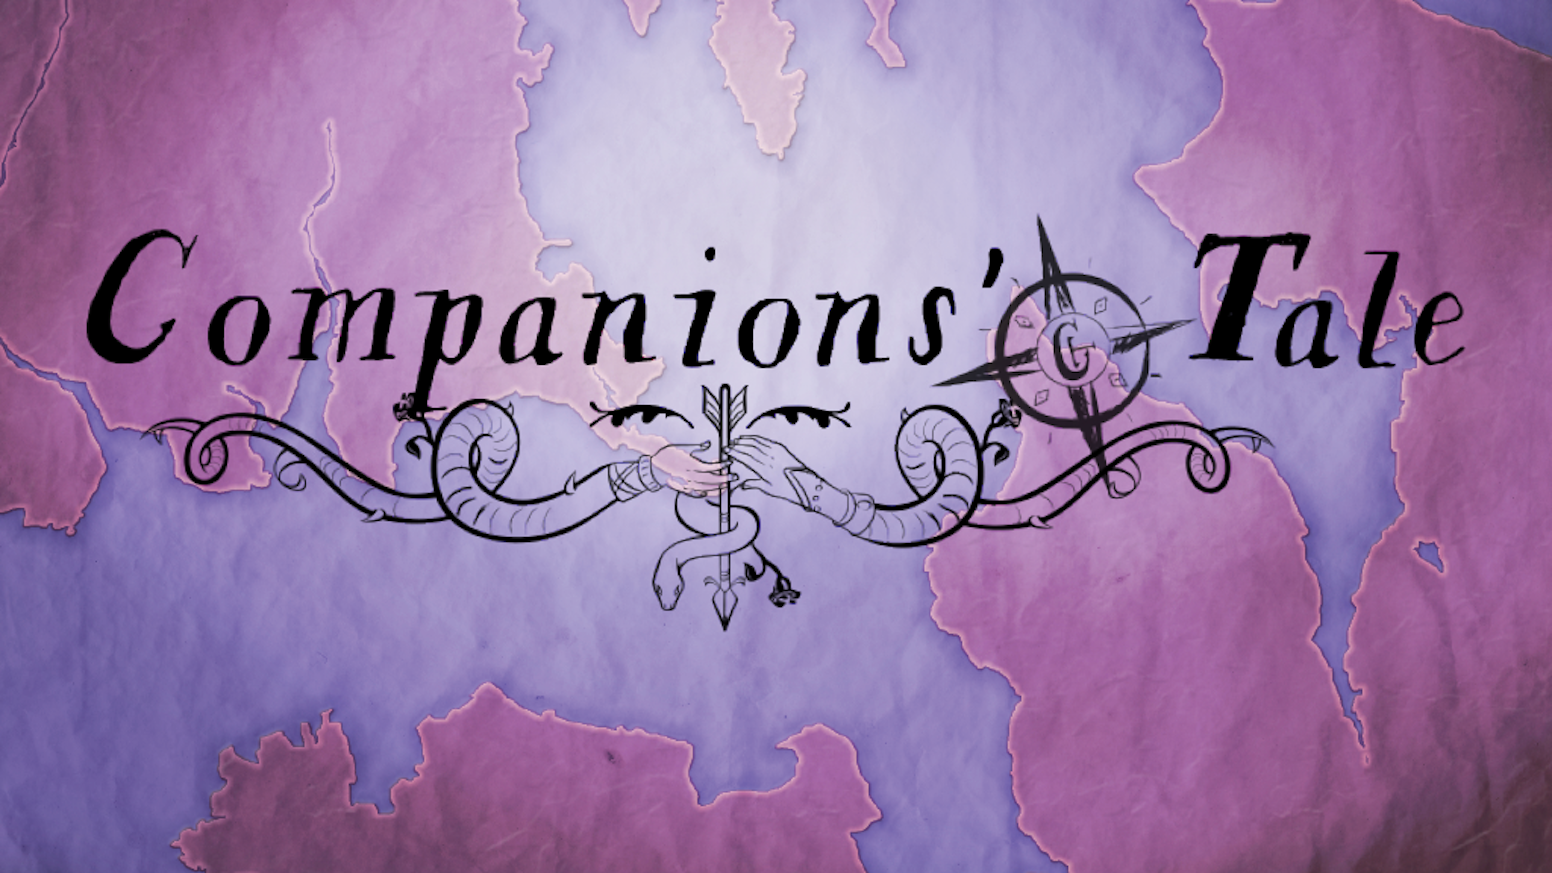 Companions' Tale is a map-making storytelling game about an epic hero—from the point of view of the hero's companions.